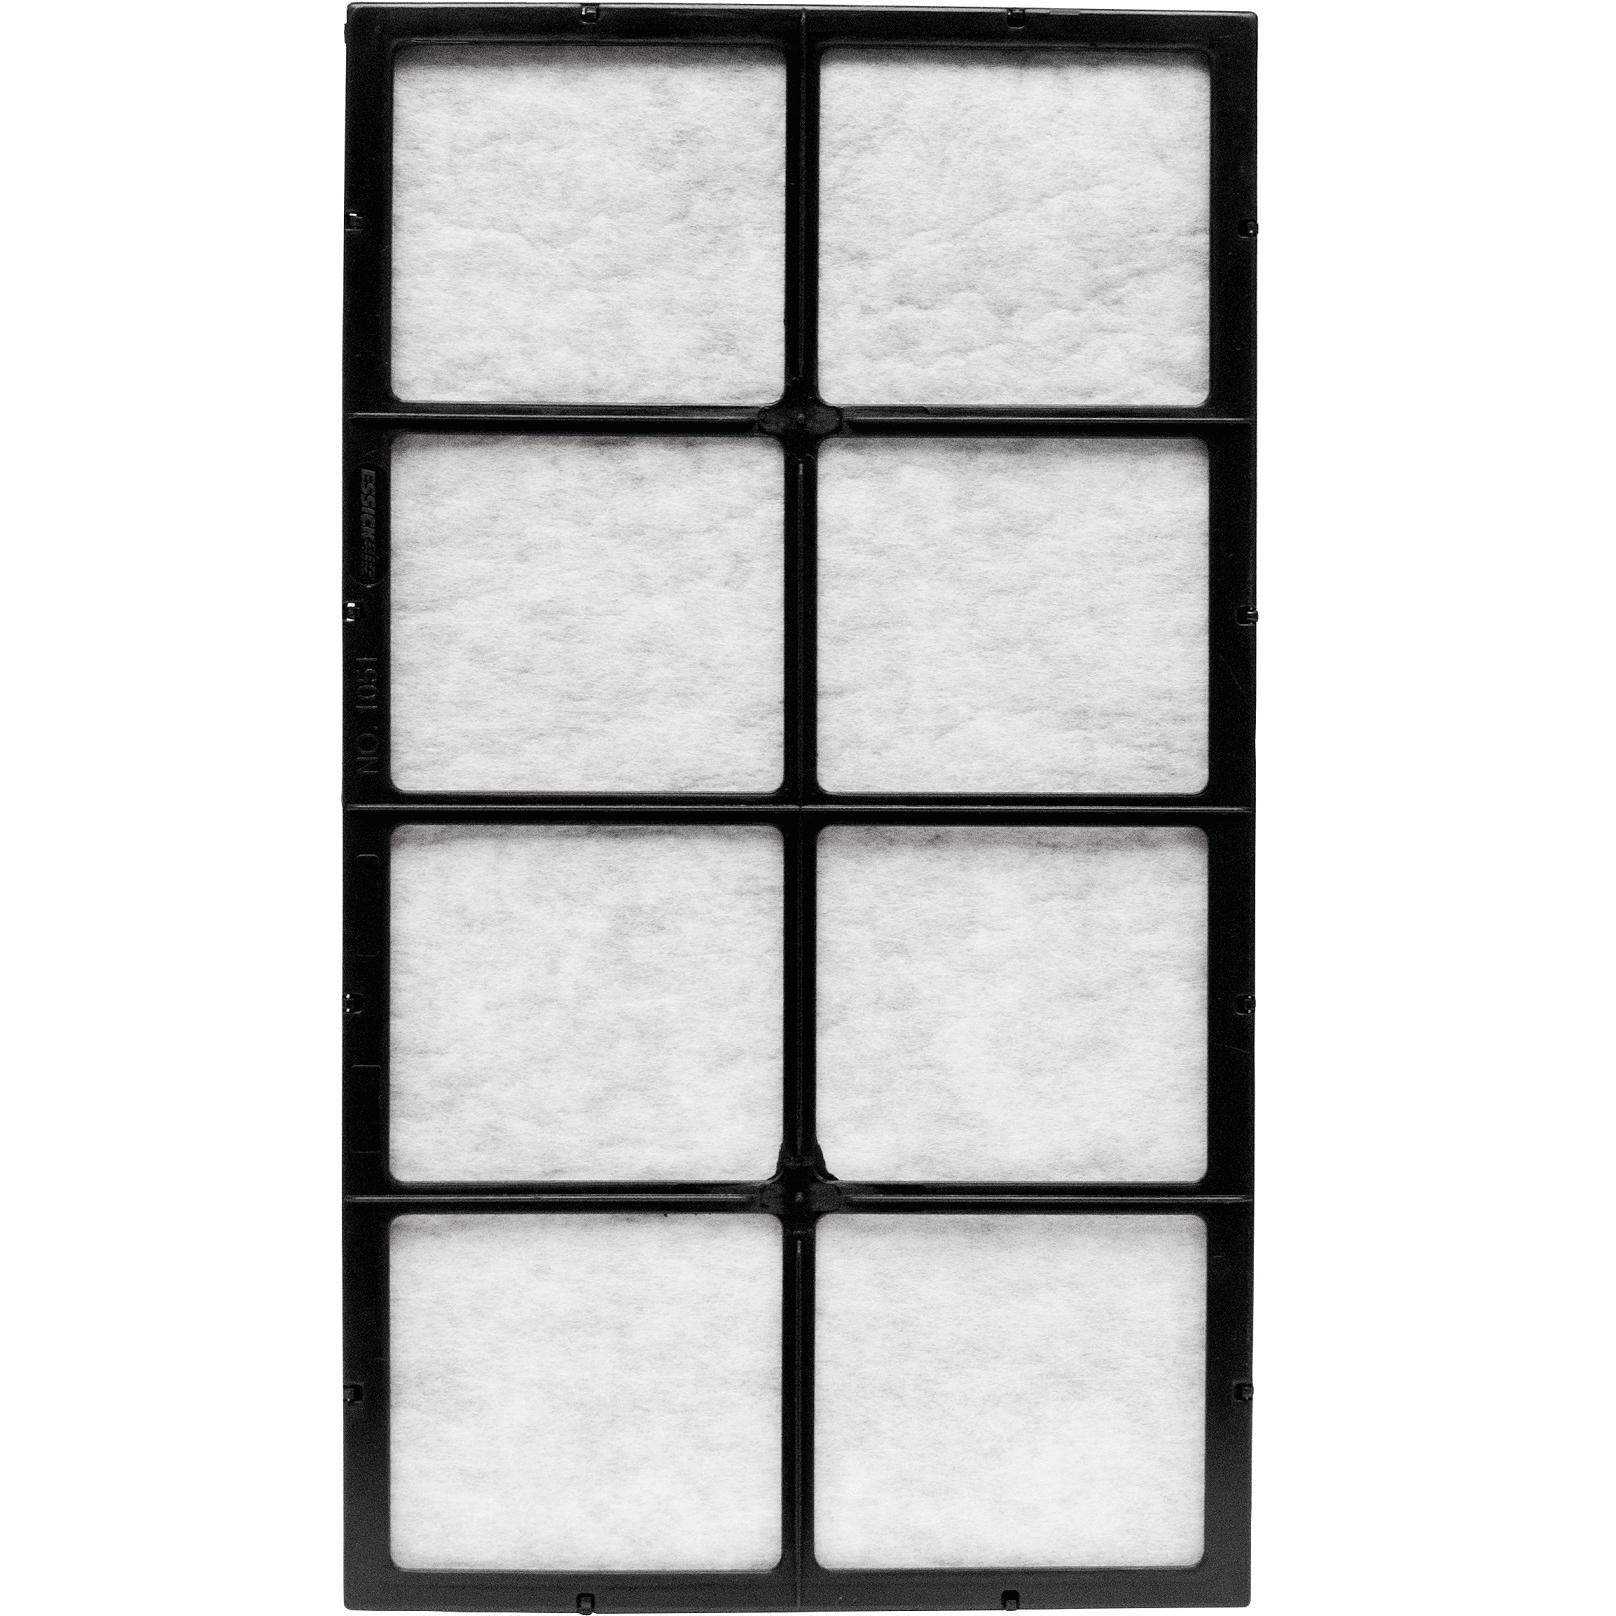 essick air 2stage aircare filter - Essick Air